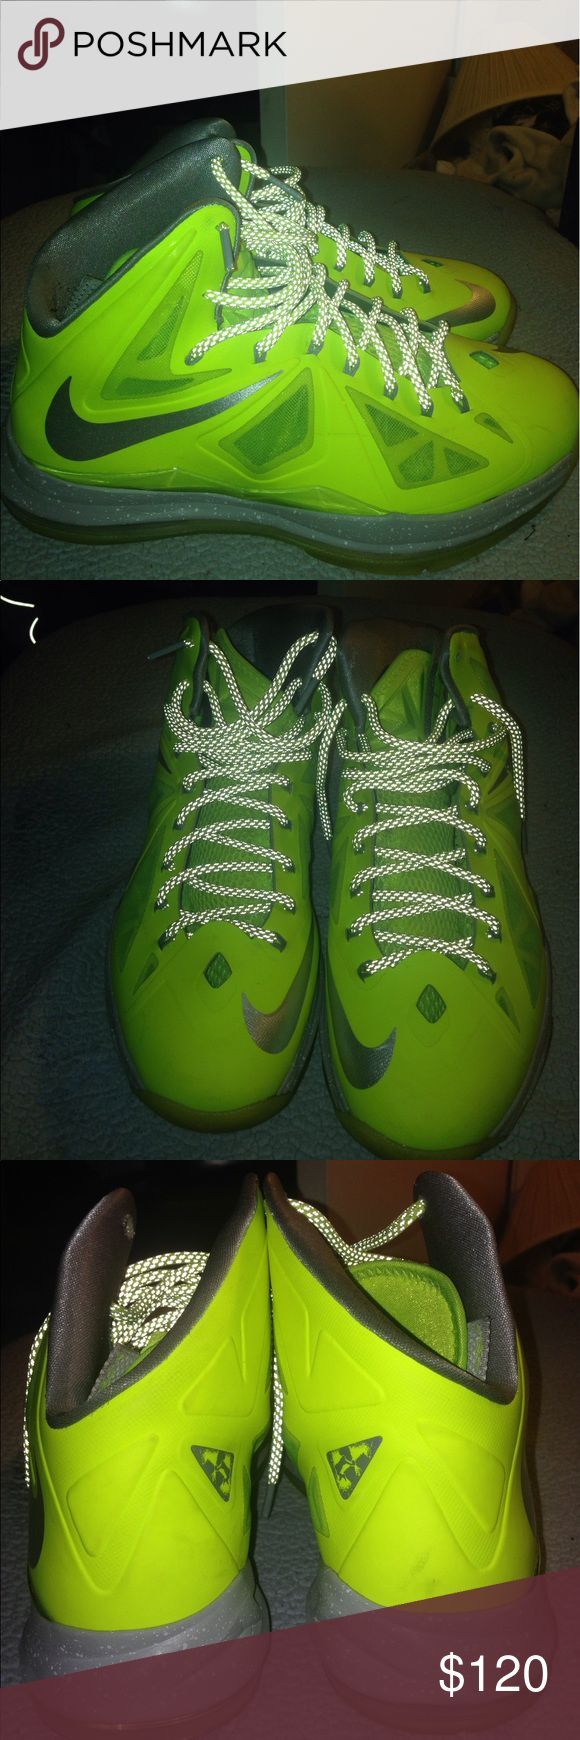 Lebron 10 Volt Edition Mint Condition Rarely Worn Plus The Grip Is Barely Faded Plus They 4 Years Old Nike Shoes Sneakers